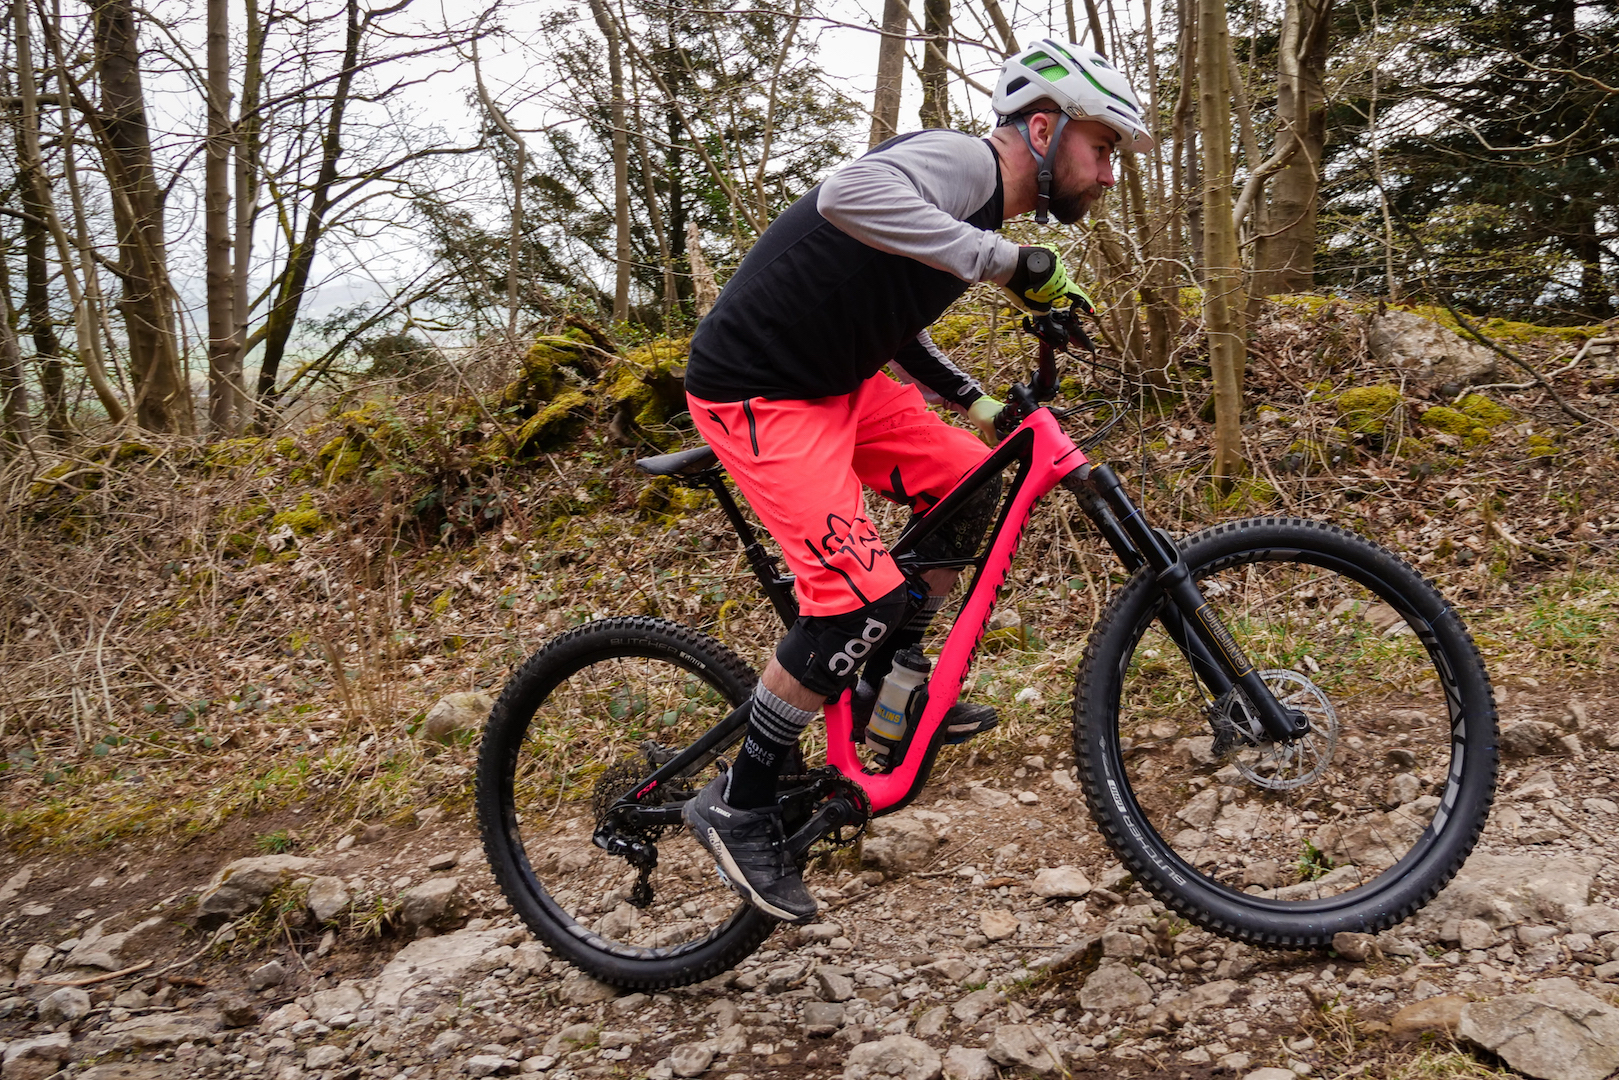 Review: Specialized goes #fullenduro for 2018 with the